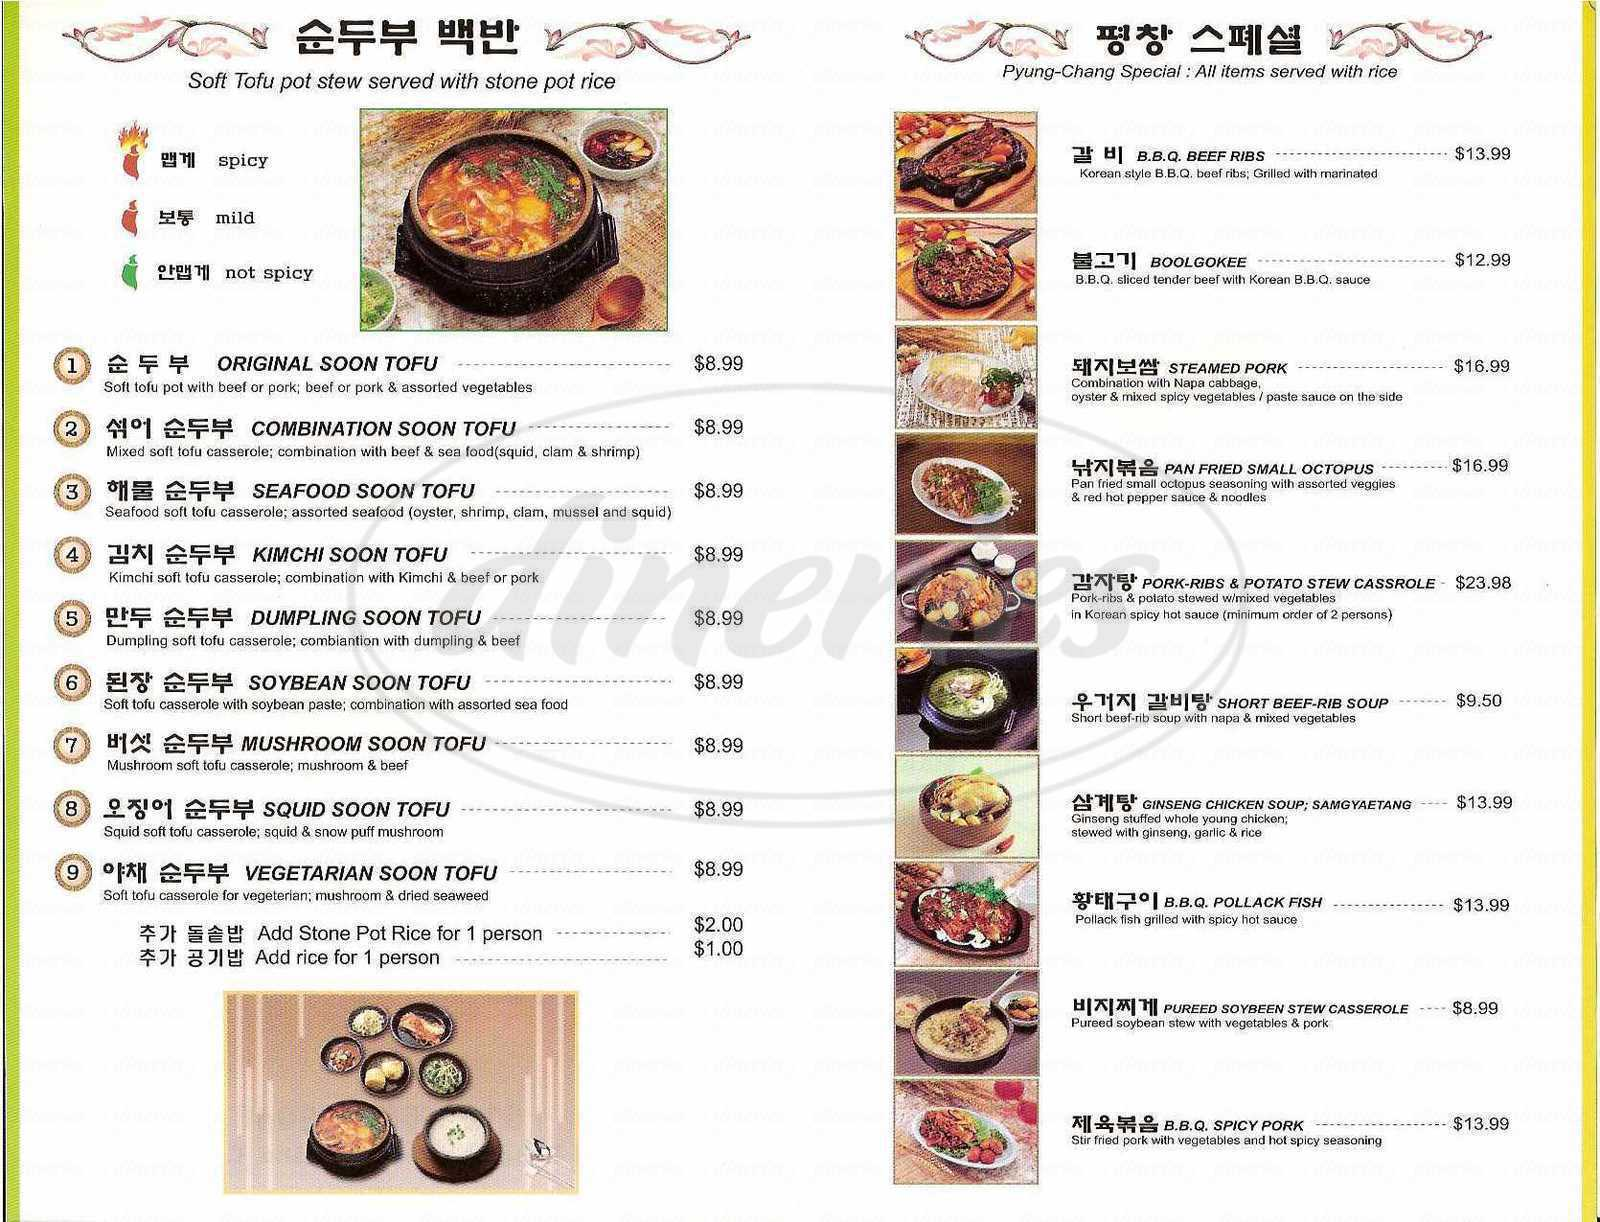 menu for Pyung Chang Soft Tofu House